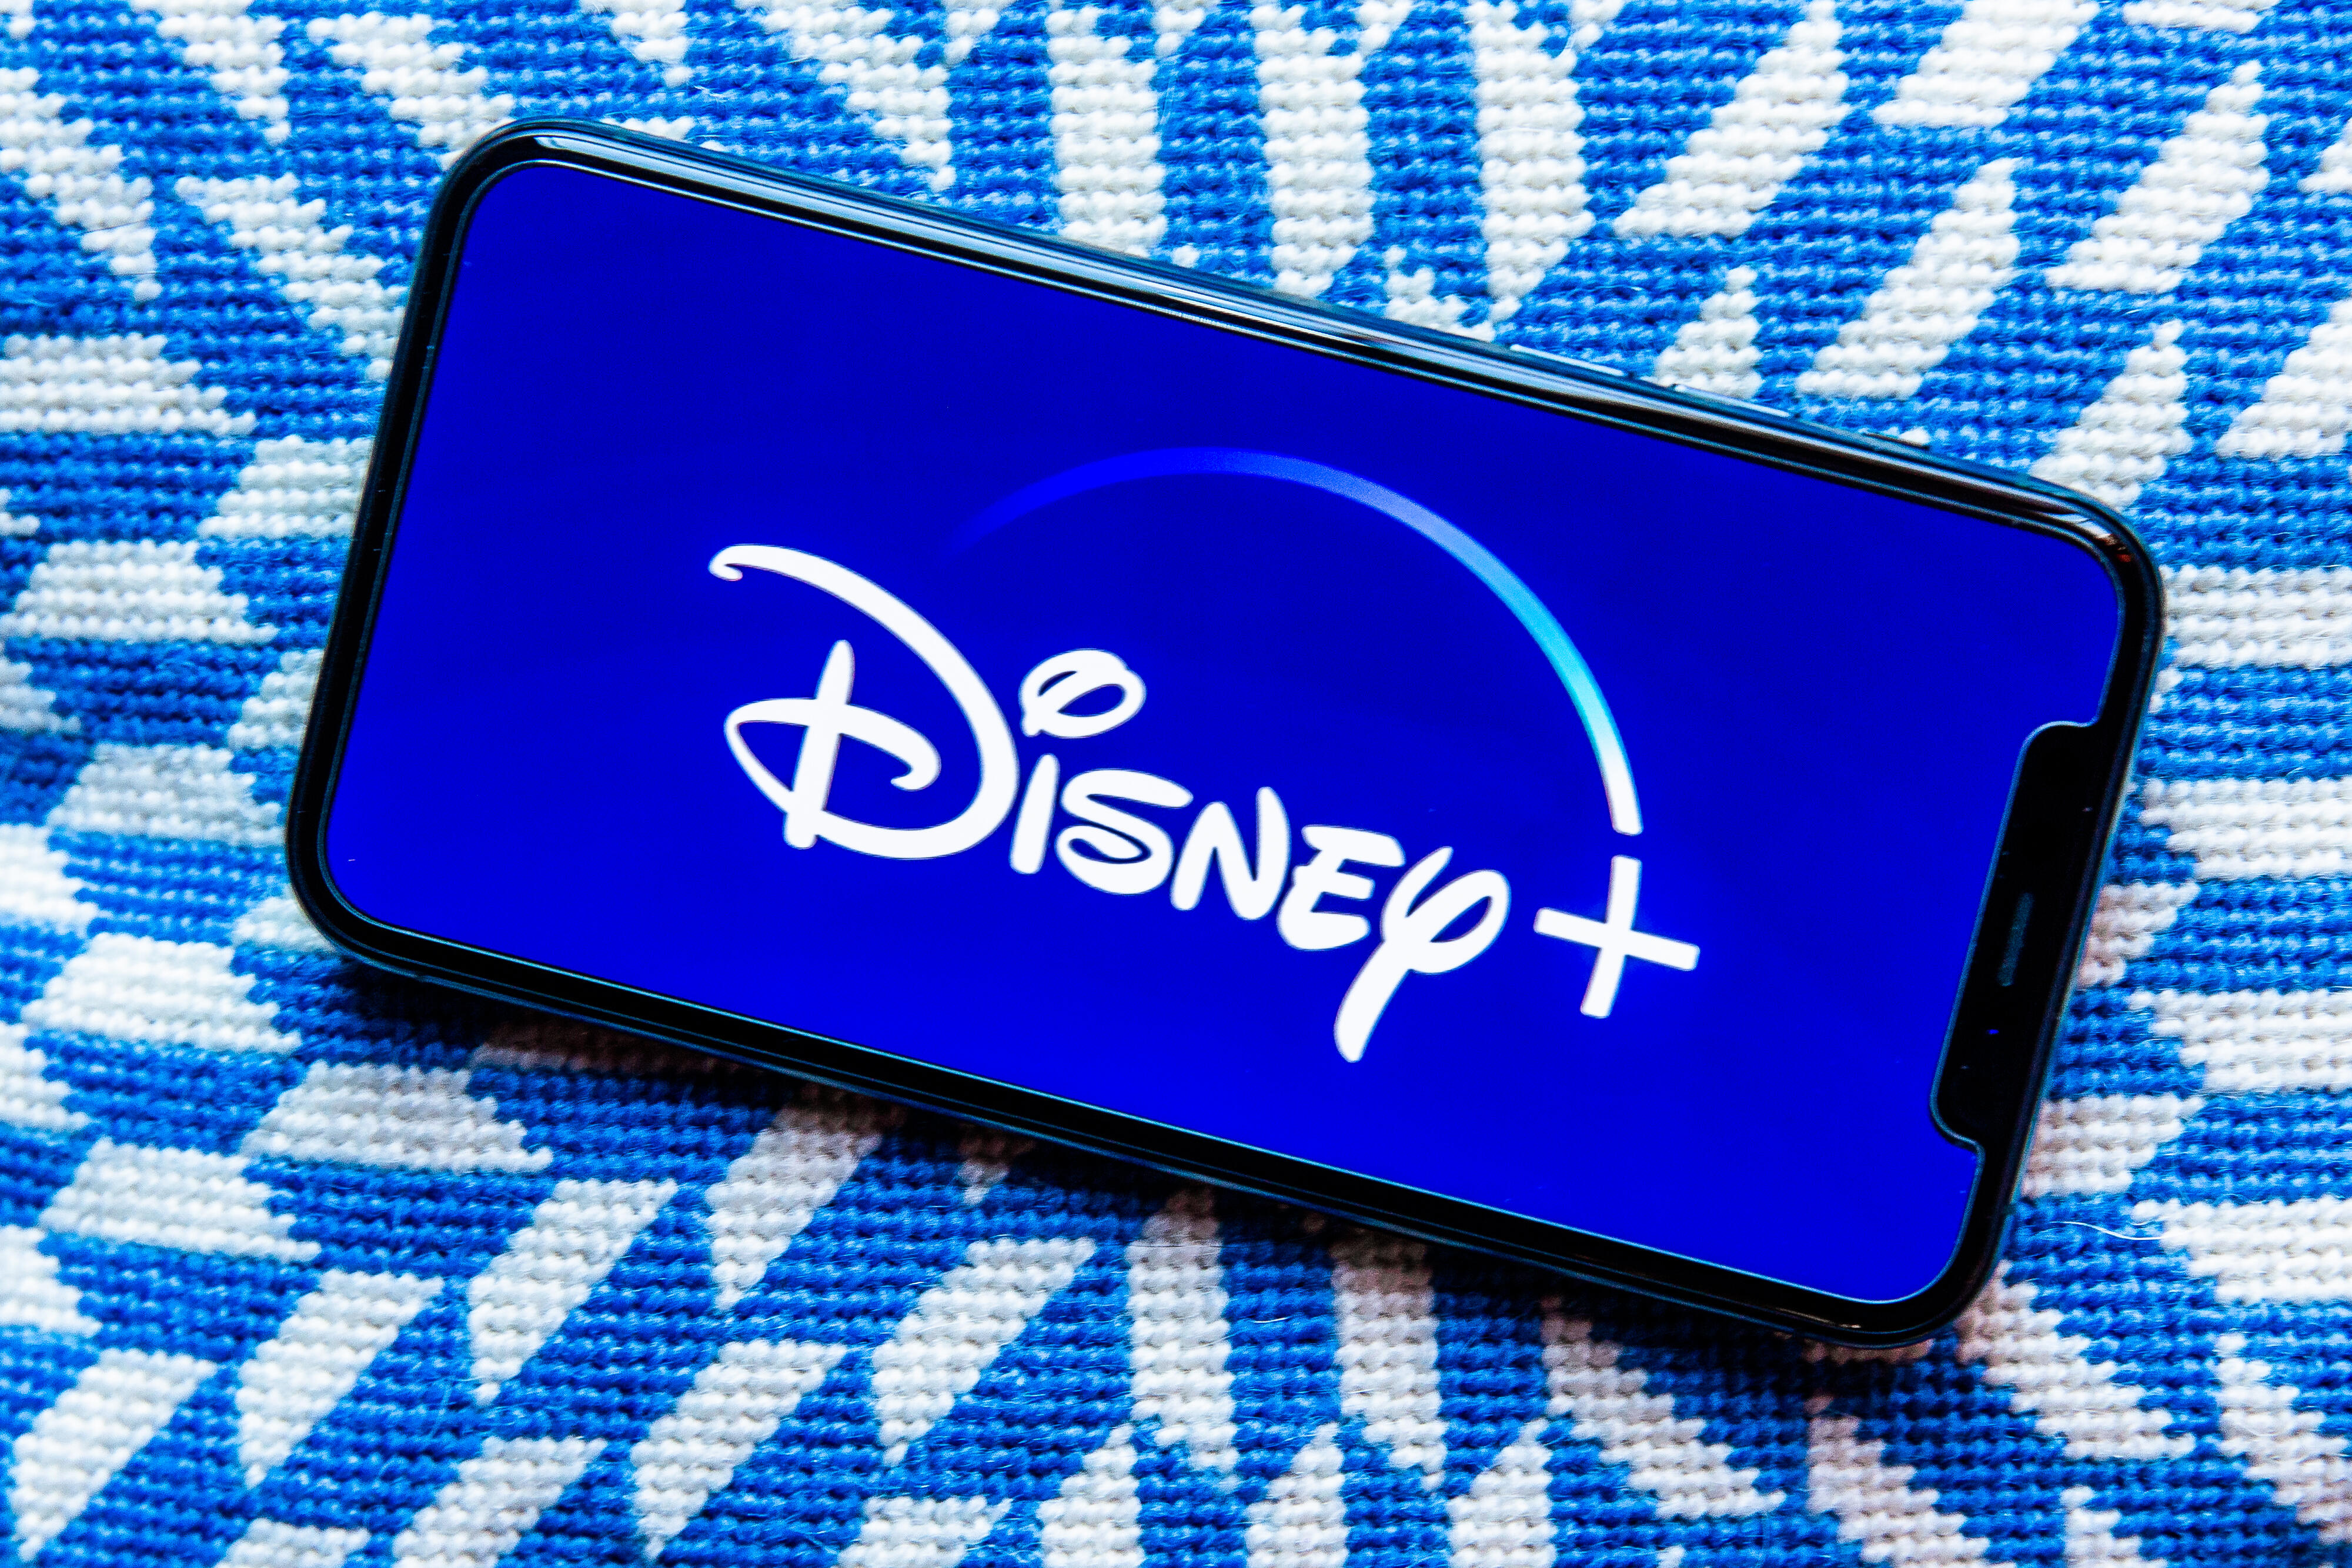 Disney Plus' logo on a phone